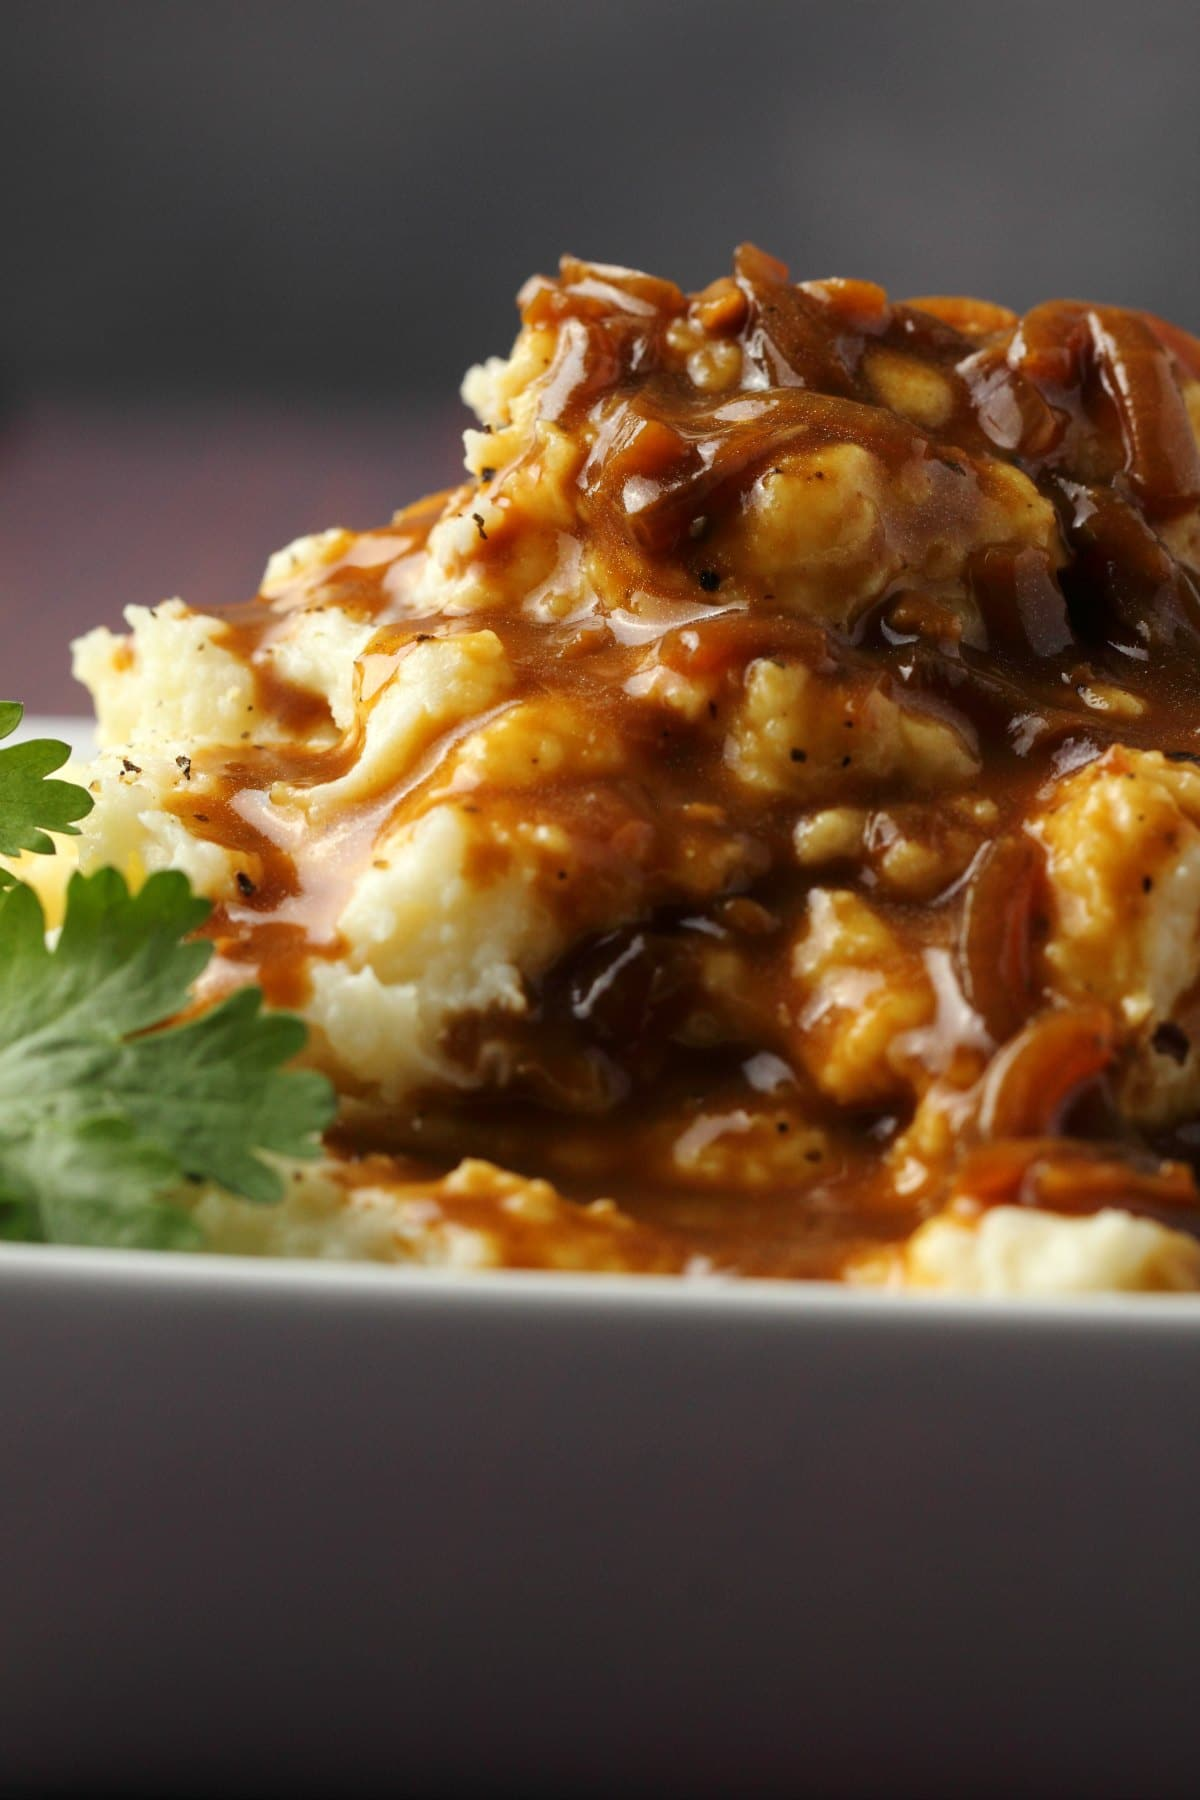 Mashed potatoes covered in gravy.